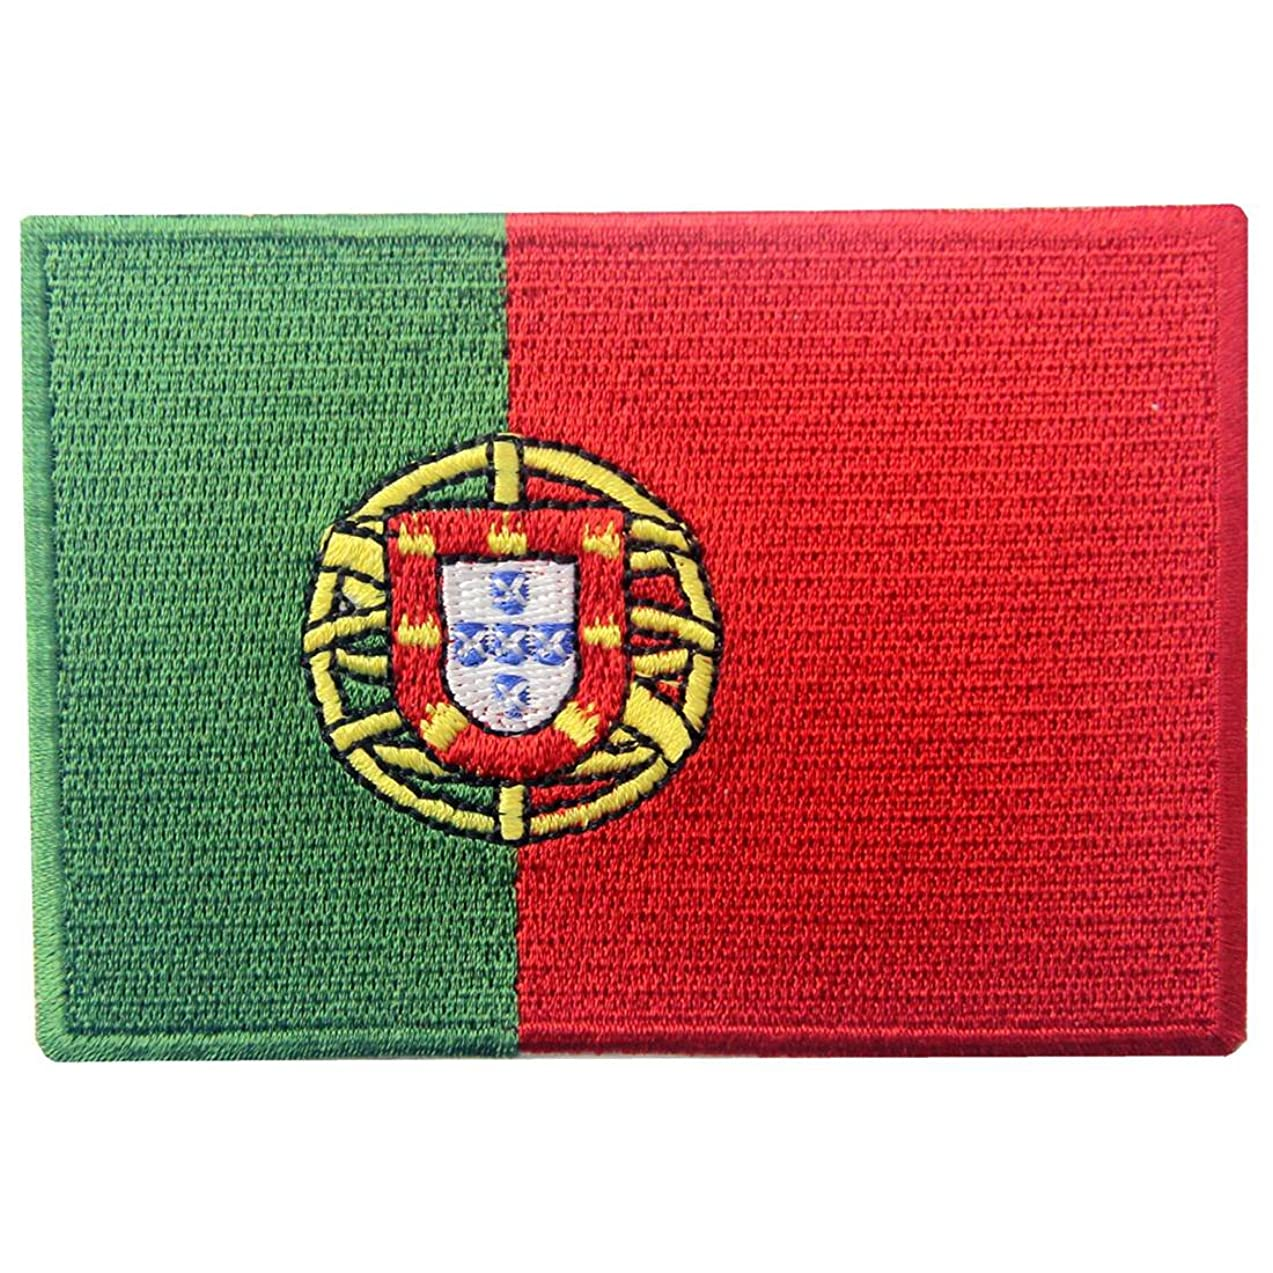 Portugal Flag Embroidered Emblem Portuguese Iron On Sew On National Patch